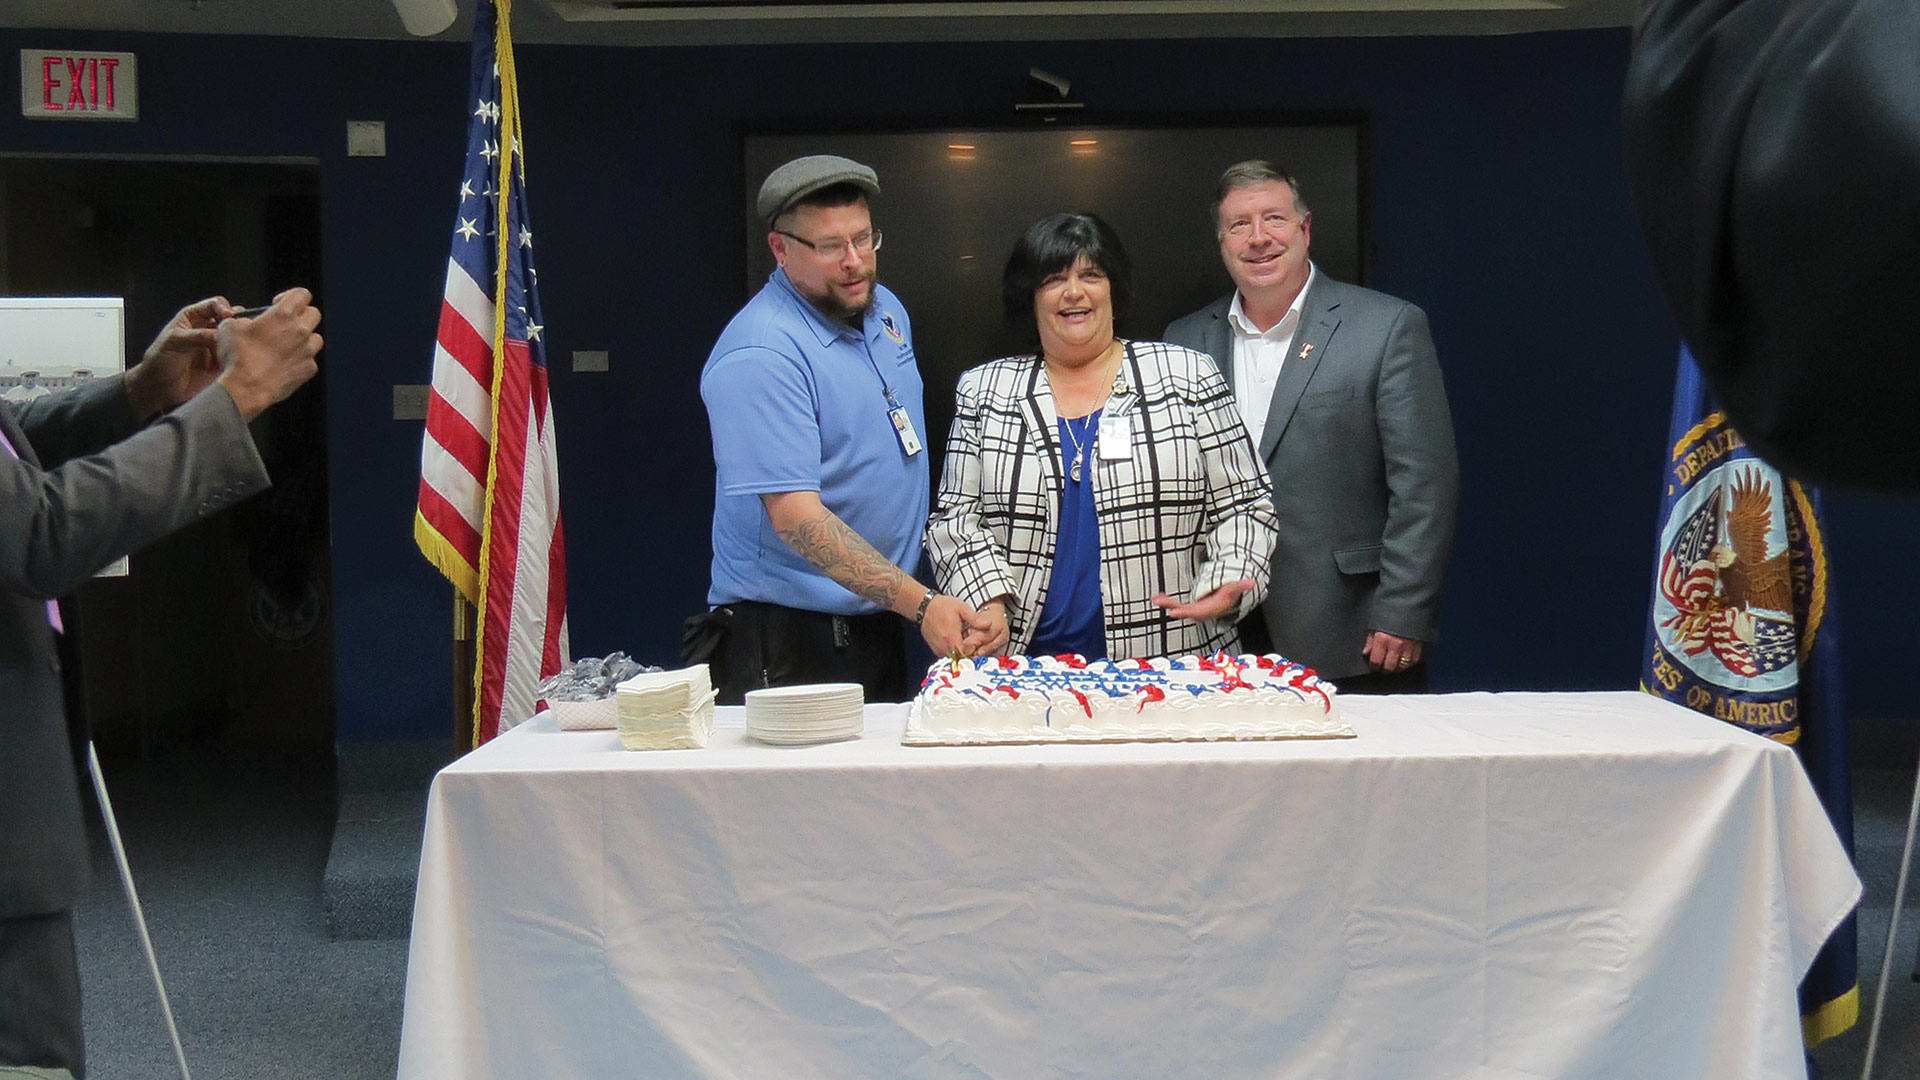 Collins joins recently hired employees to cut the cake